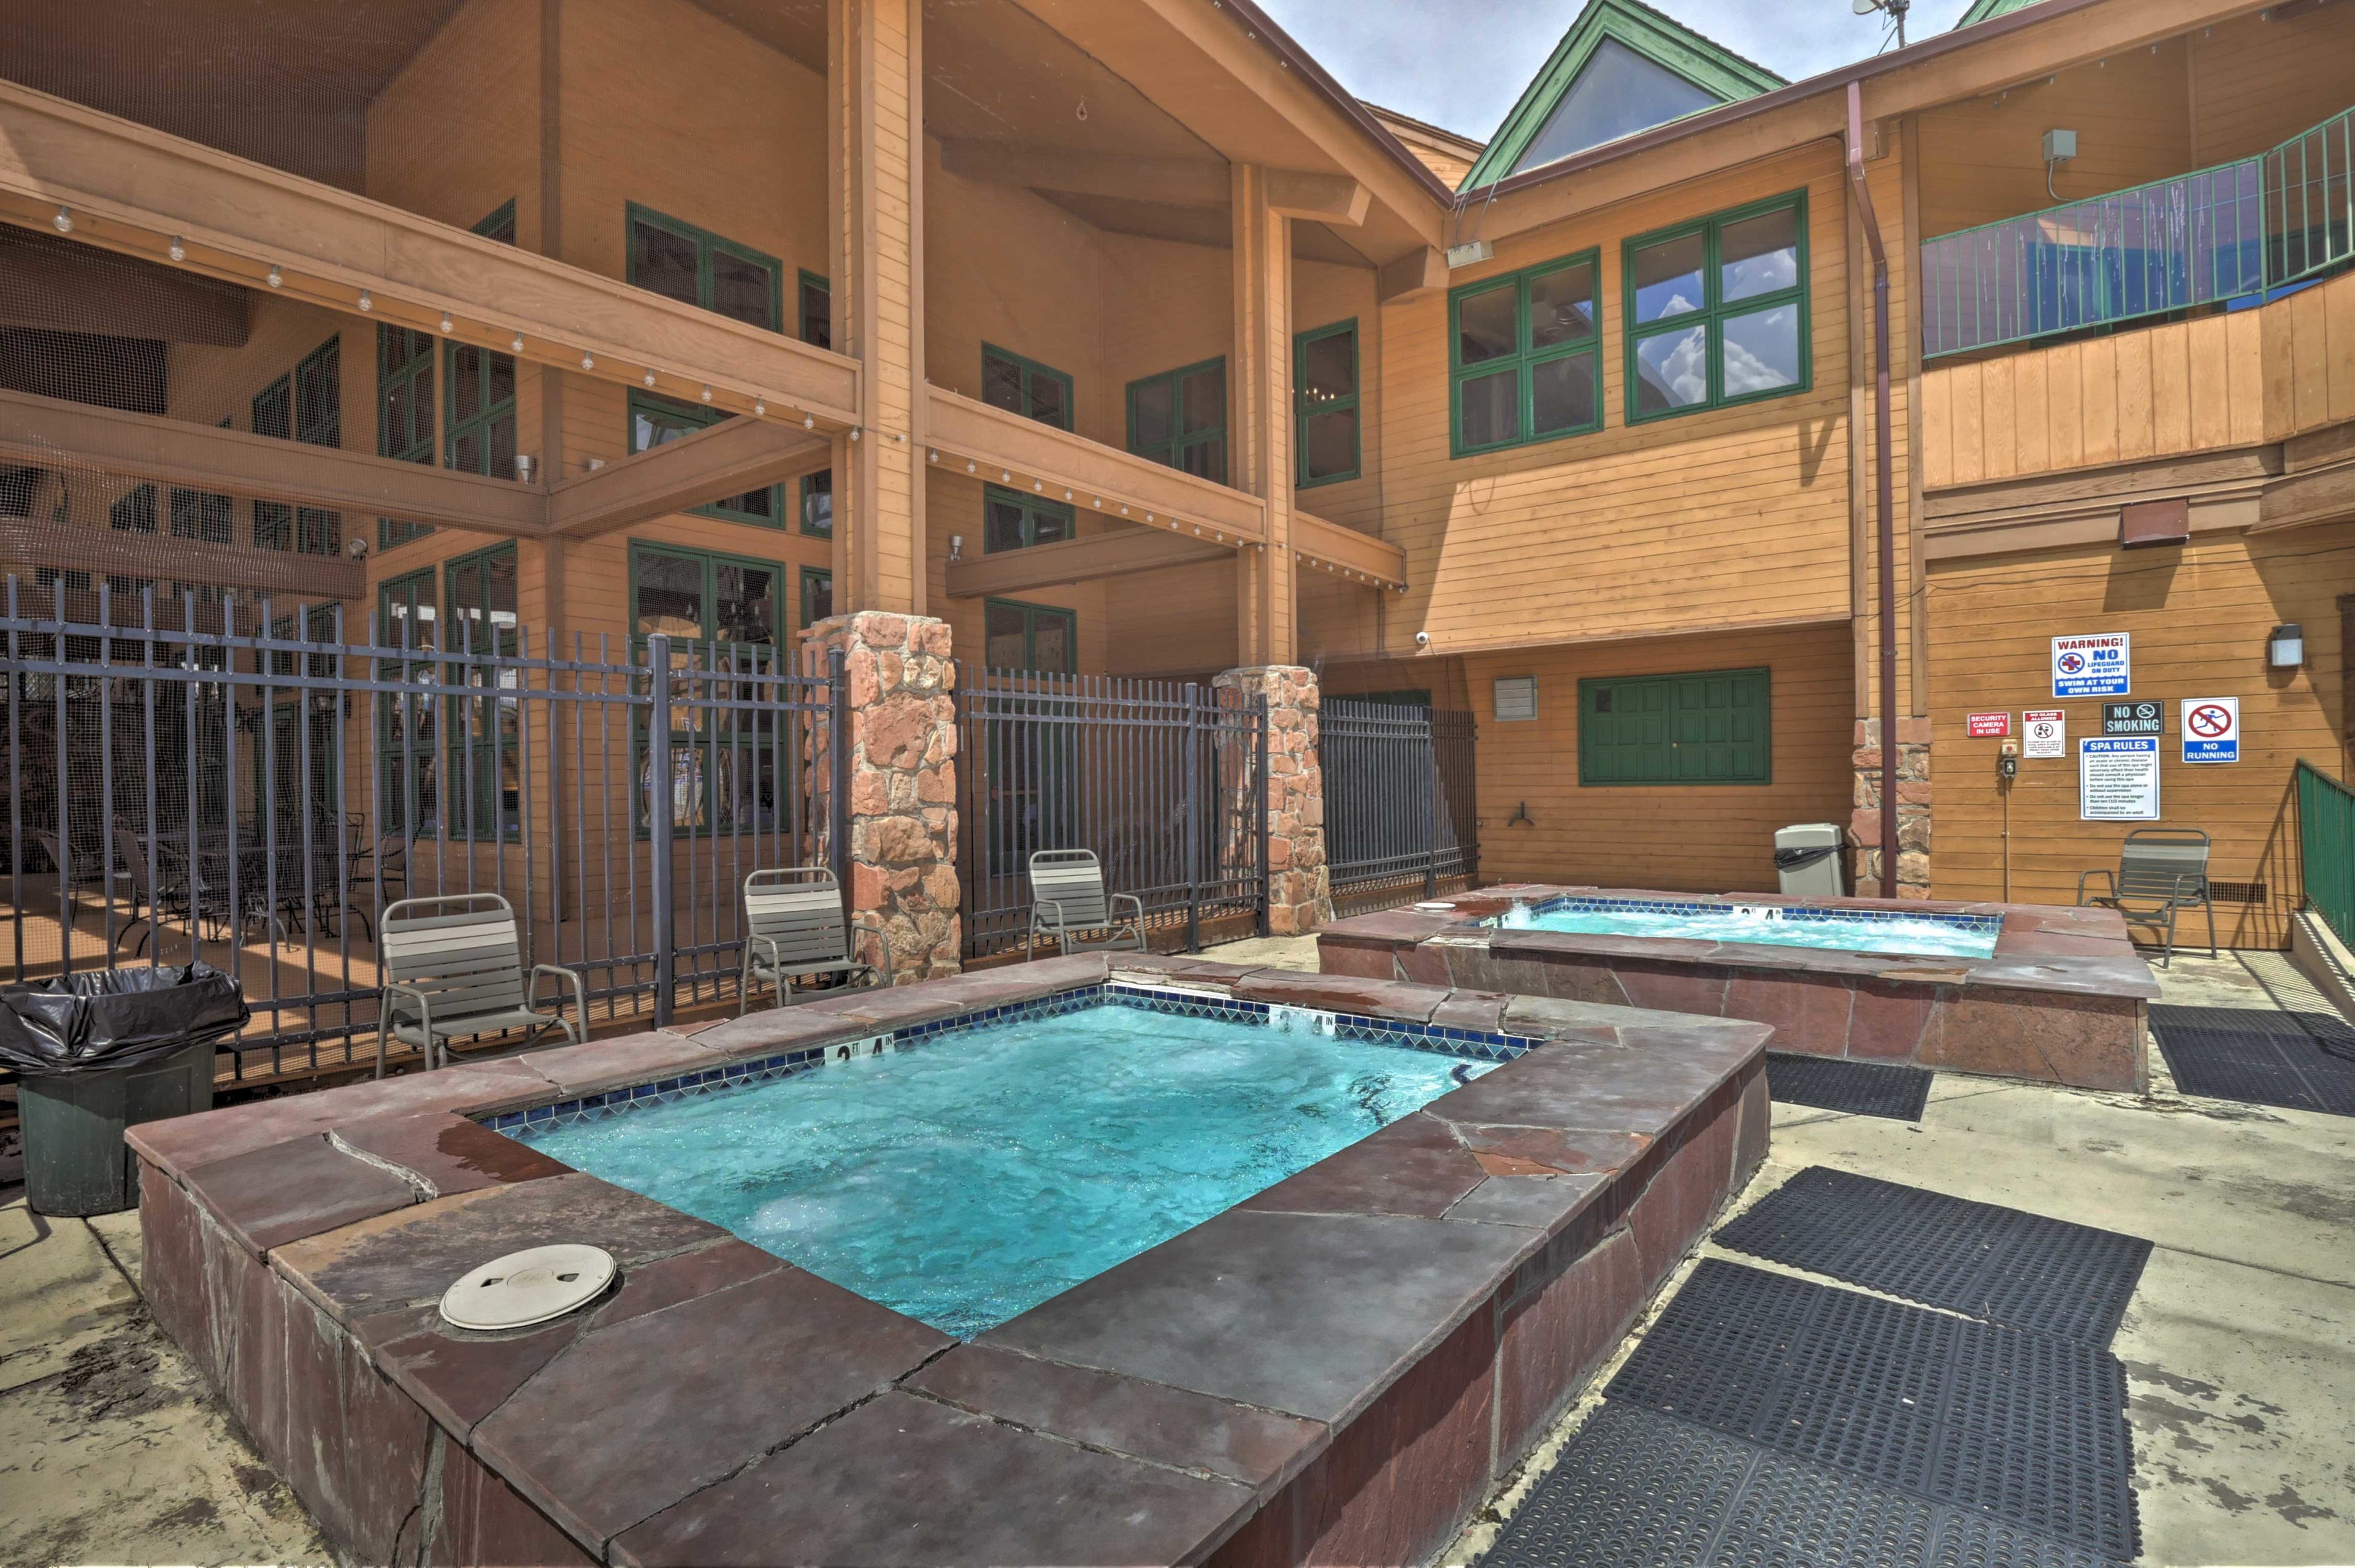 Outside, there are 2 additional hot tubs.